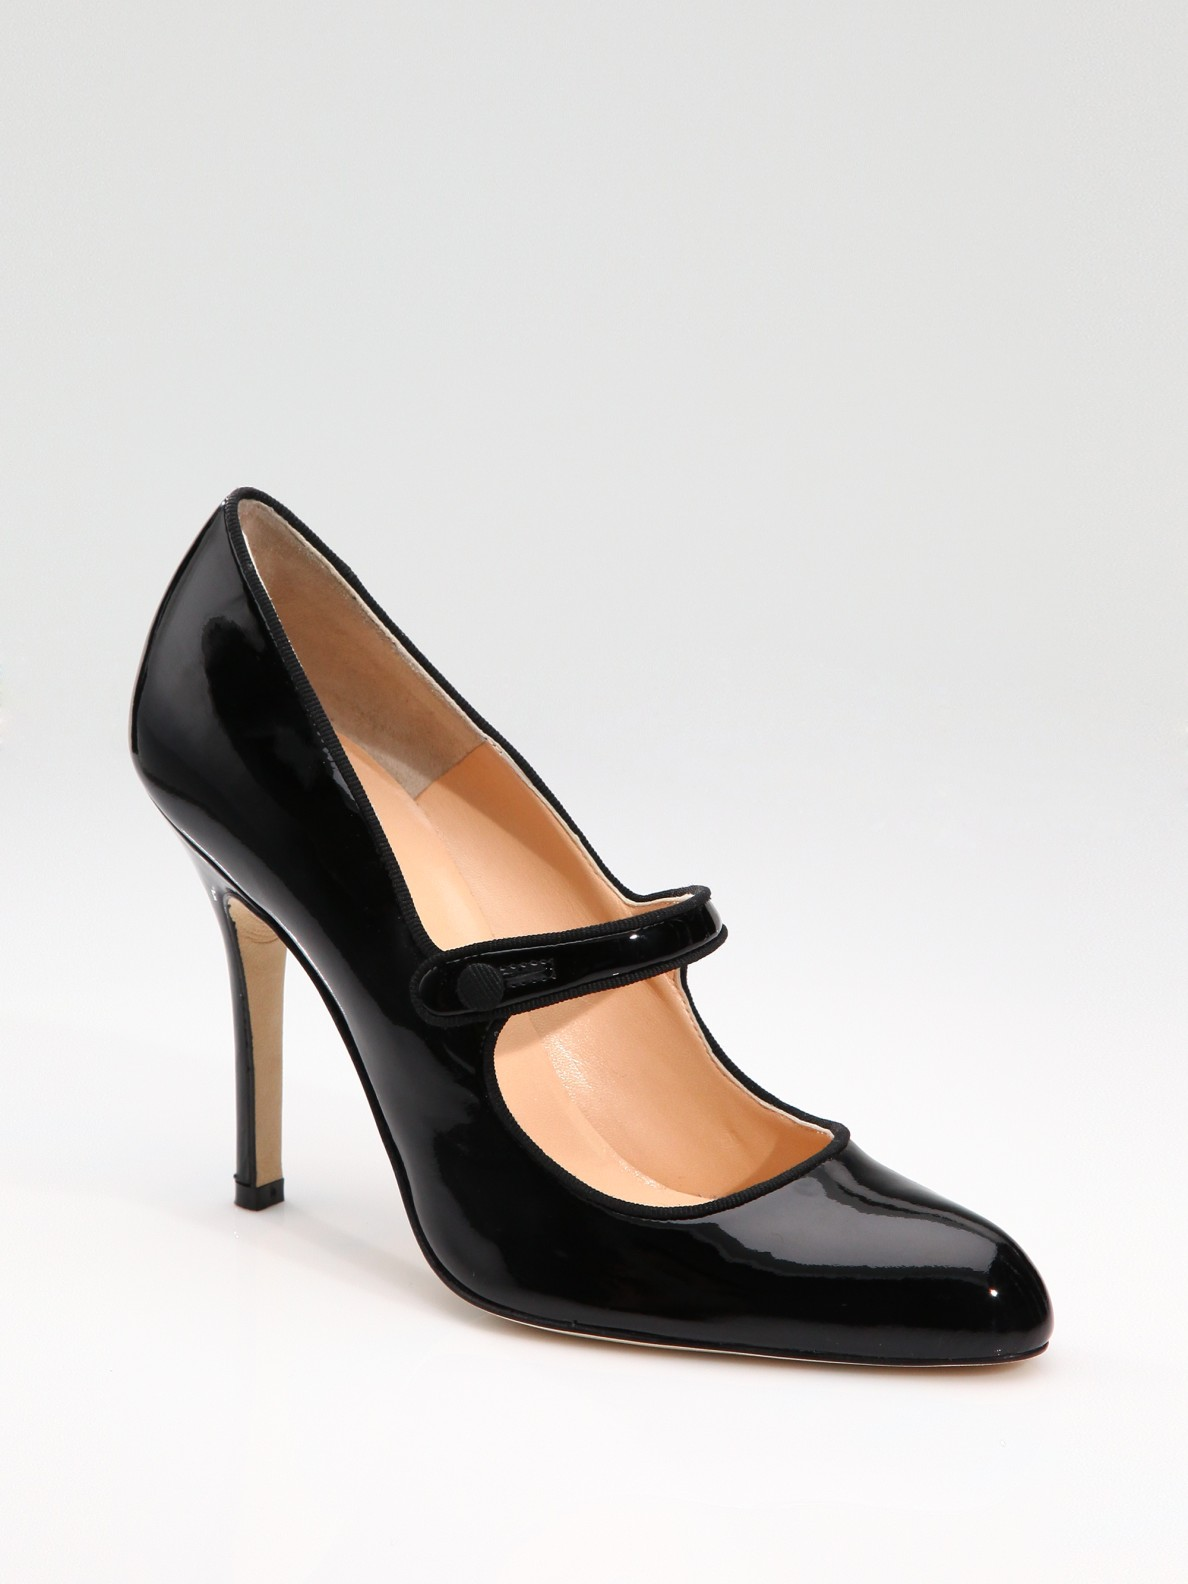 Manolo Blahnik Campy 90 Pumps newest sale online outlet very cheap buy cheap wiki perfect online really cheap price cCTVAv2